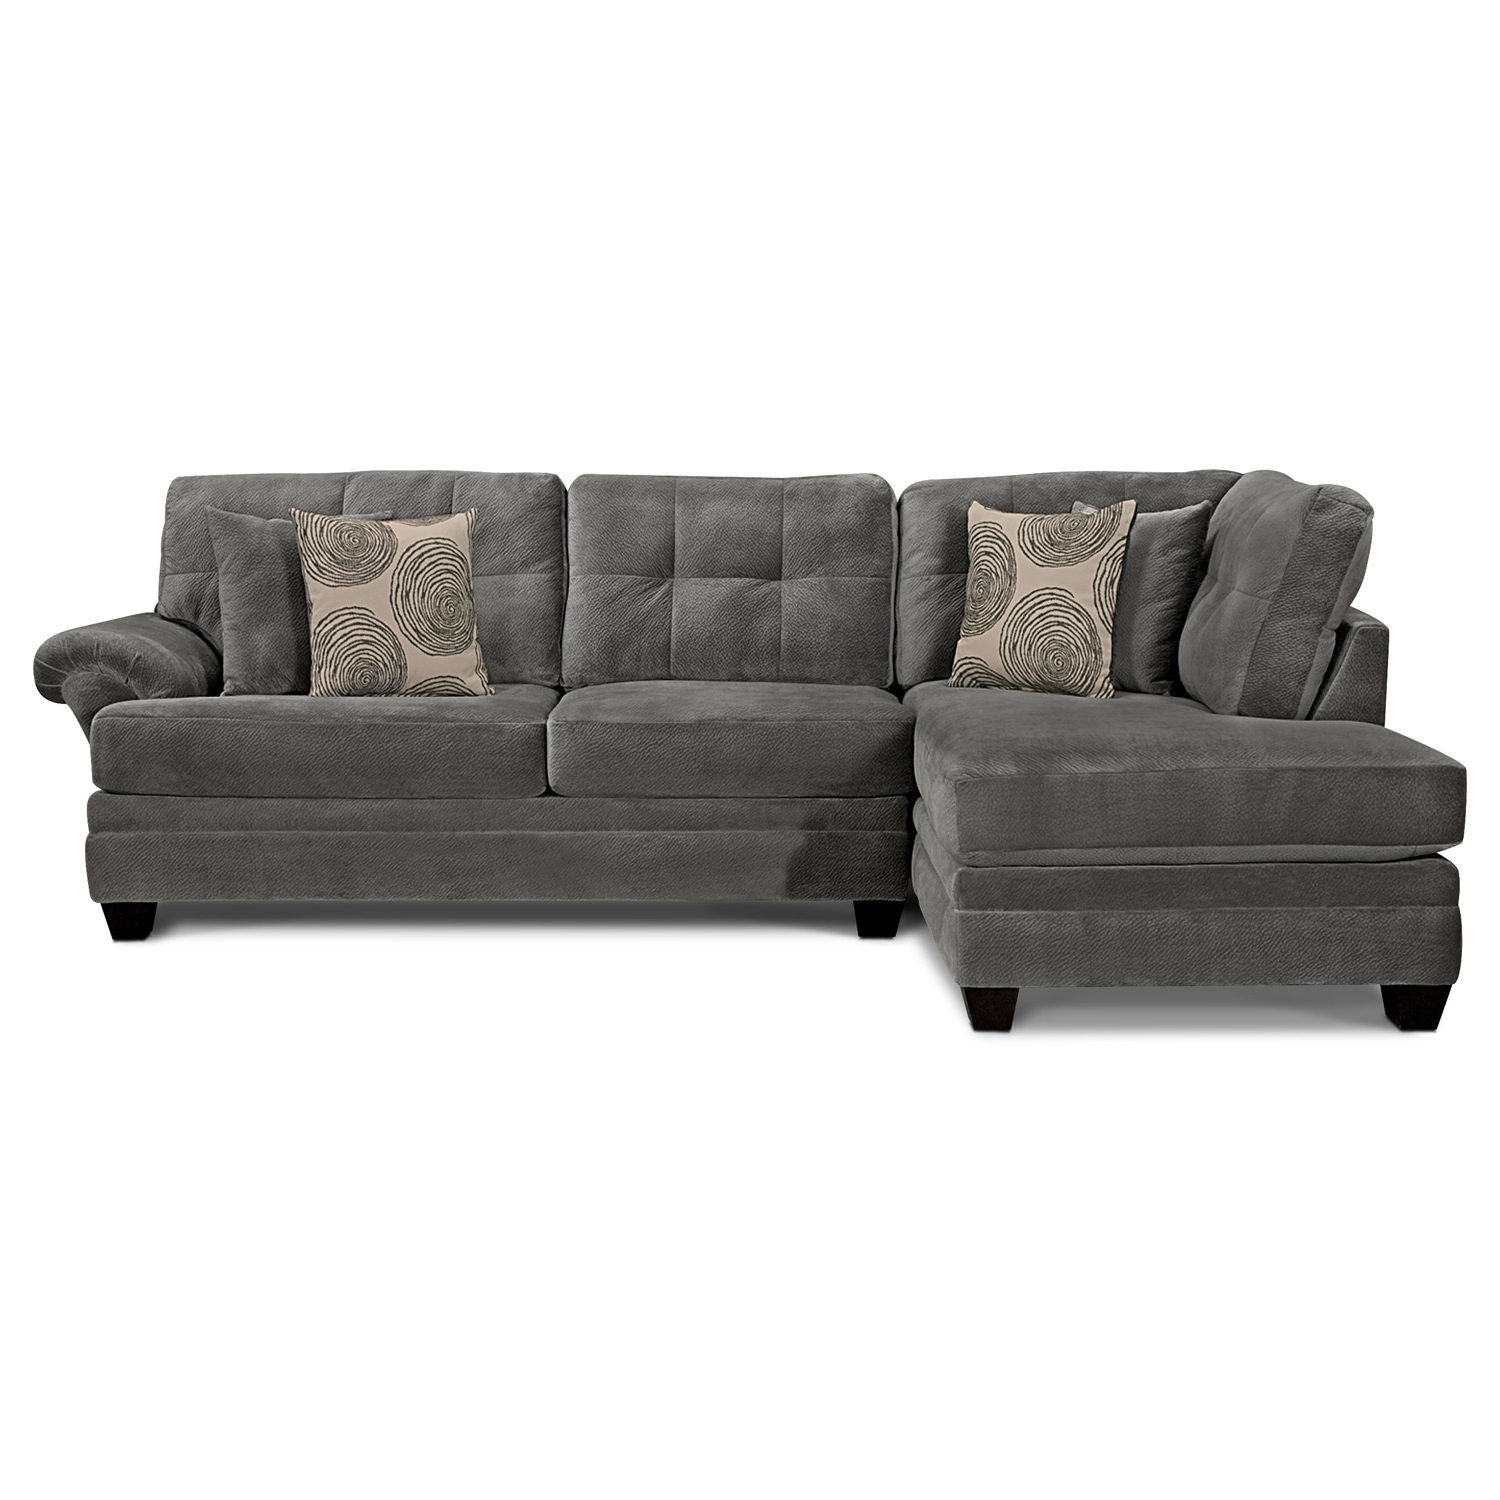 Cordelle 2 Piece Sectional With Chaise (View 7 of 20)